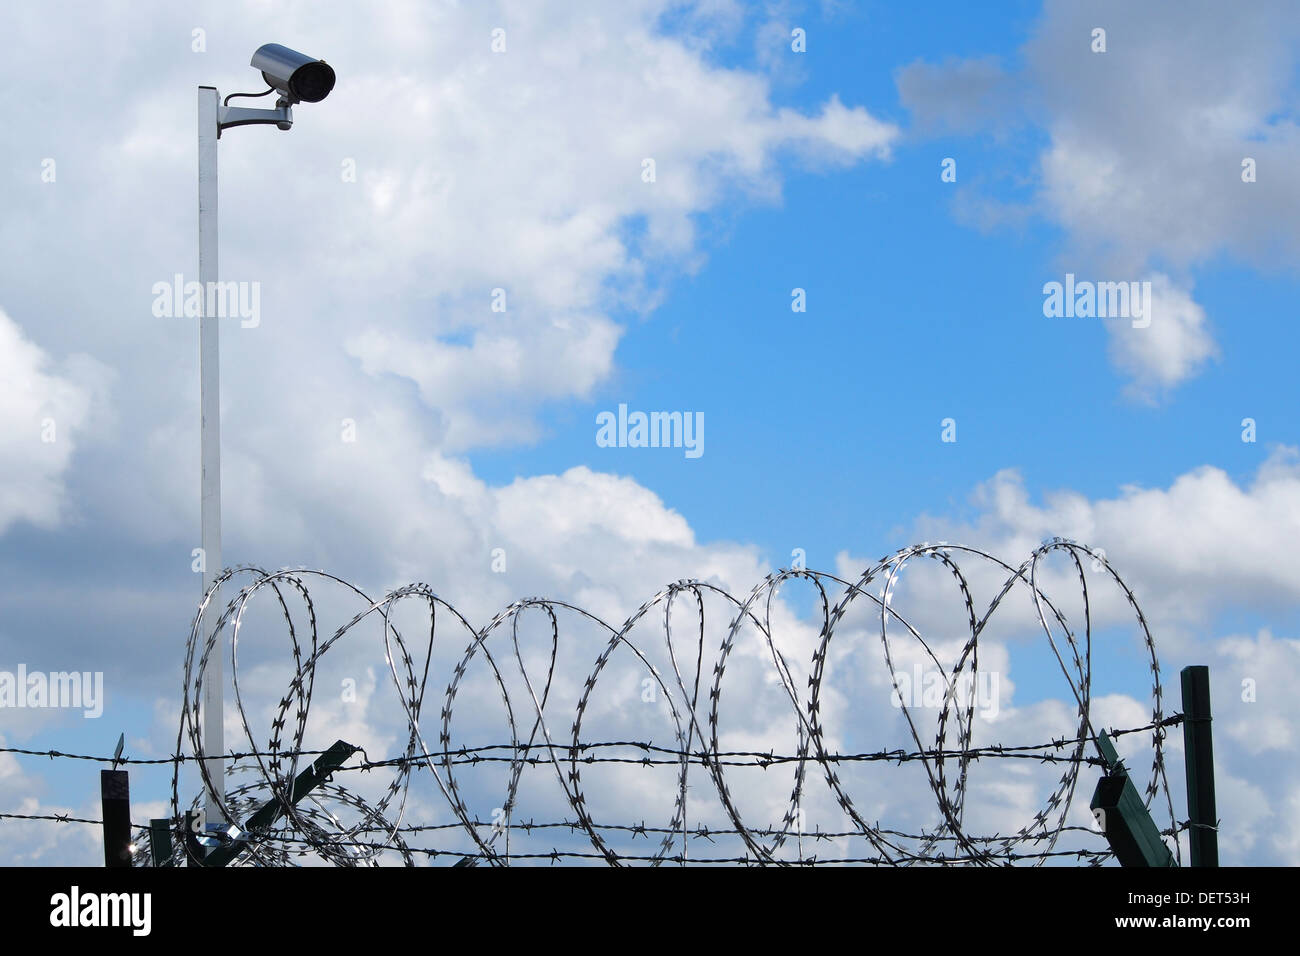 Restricted area - Stock Image